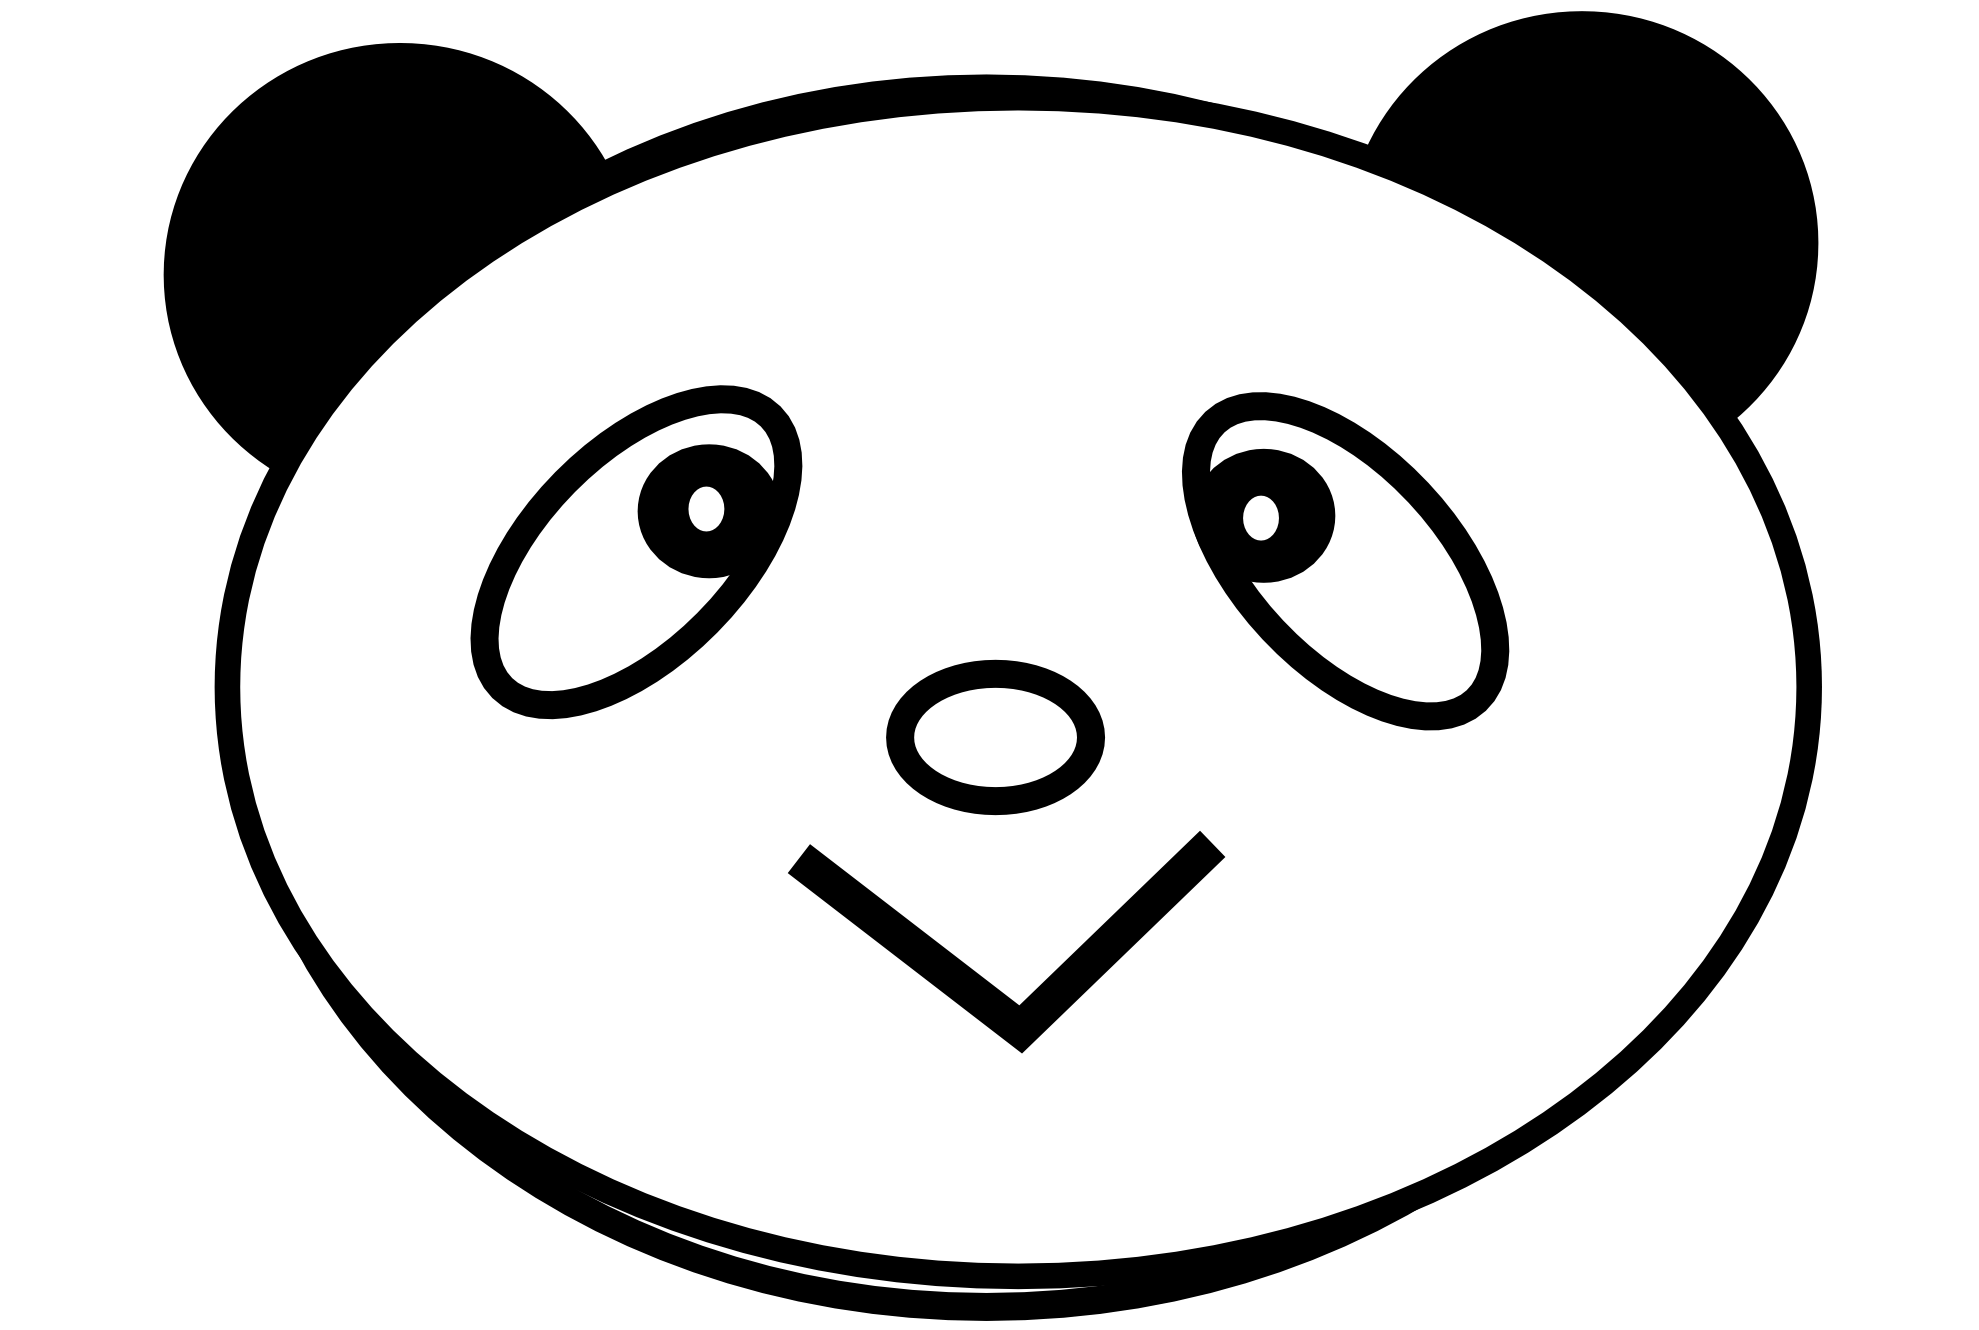 Panda Love Black White Line Teddy Bear Animal Art Coloring